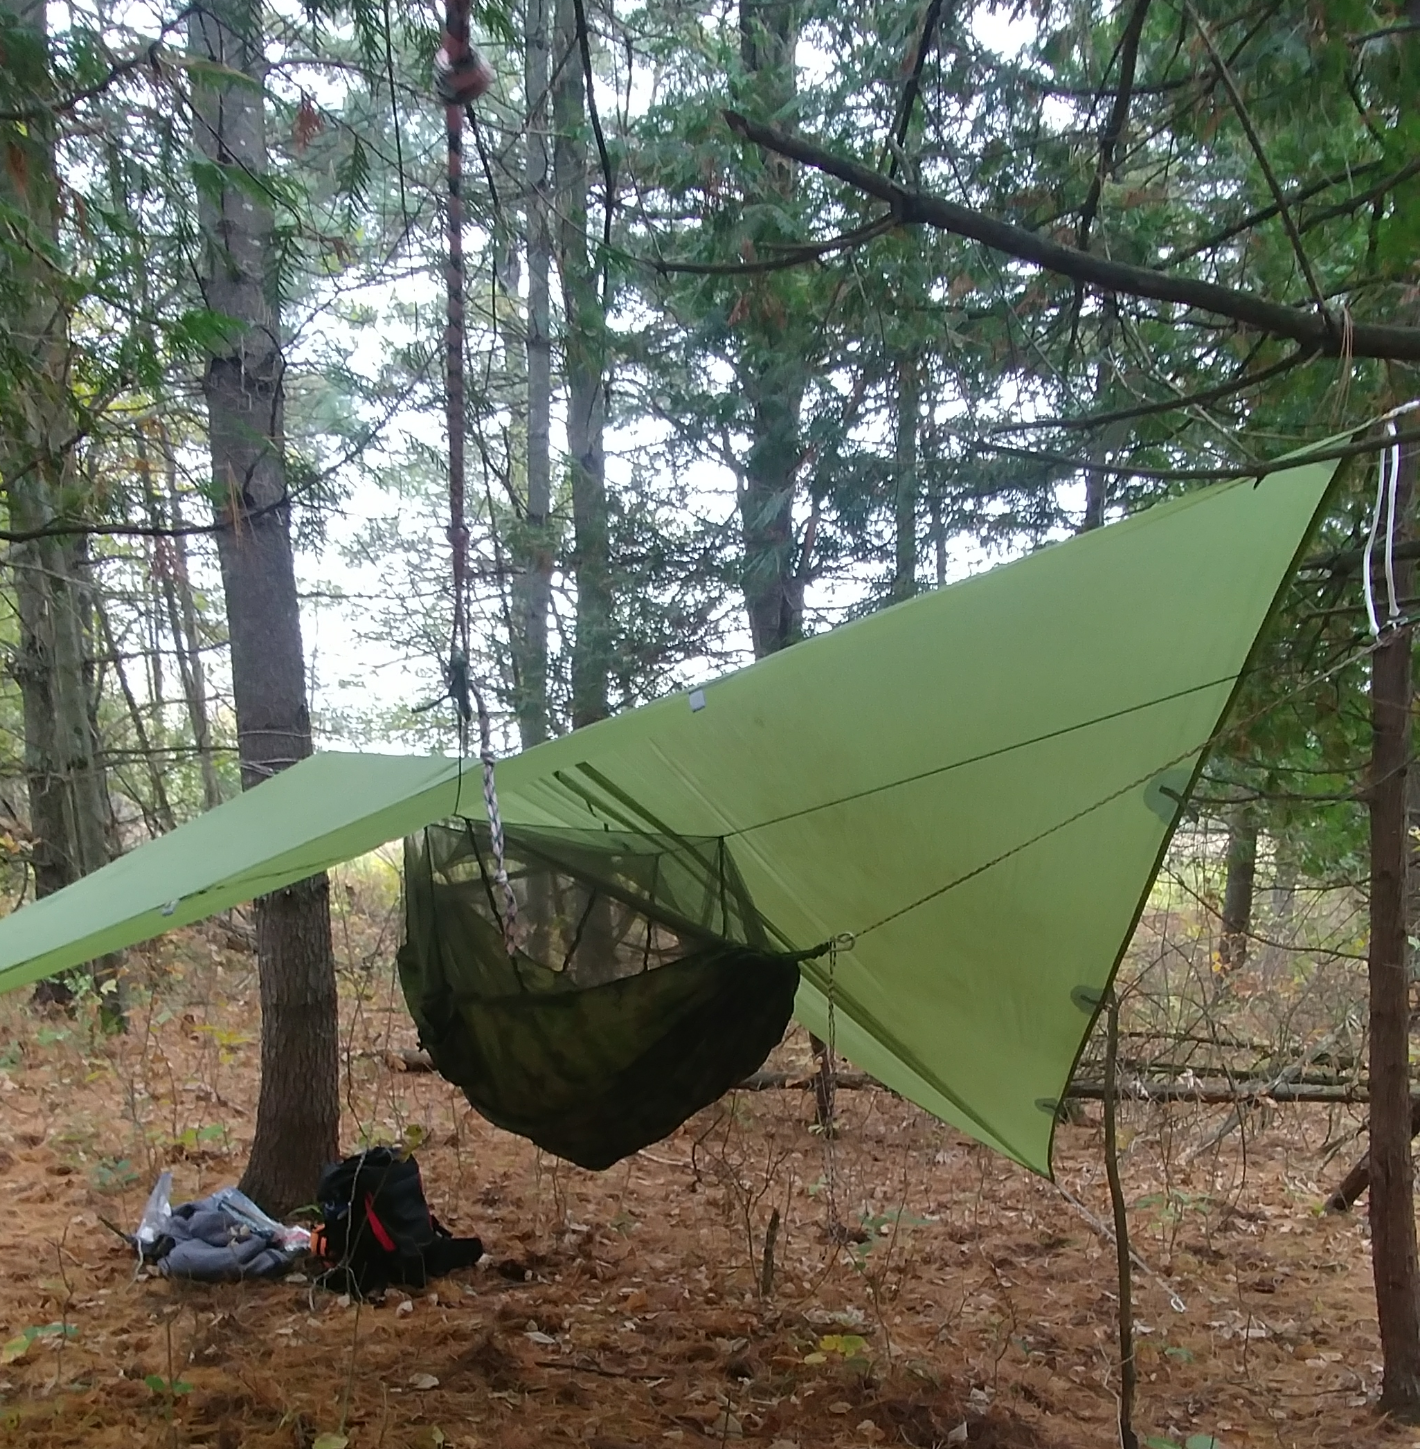 Medium image of the first of many reasons as to why hammock camping is superior to every other form of camping is the simplicity of setting up a hammock